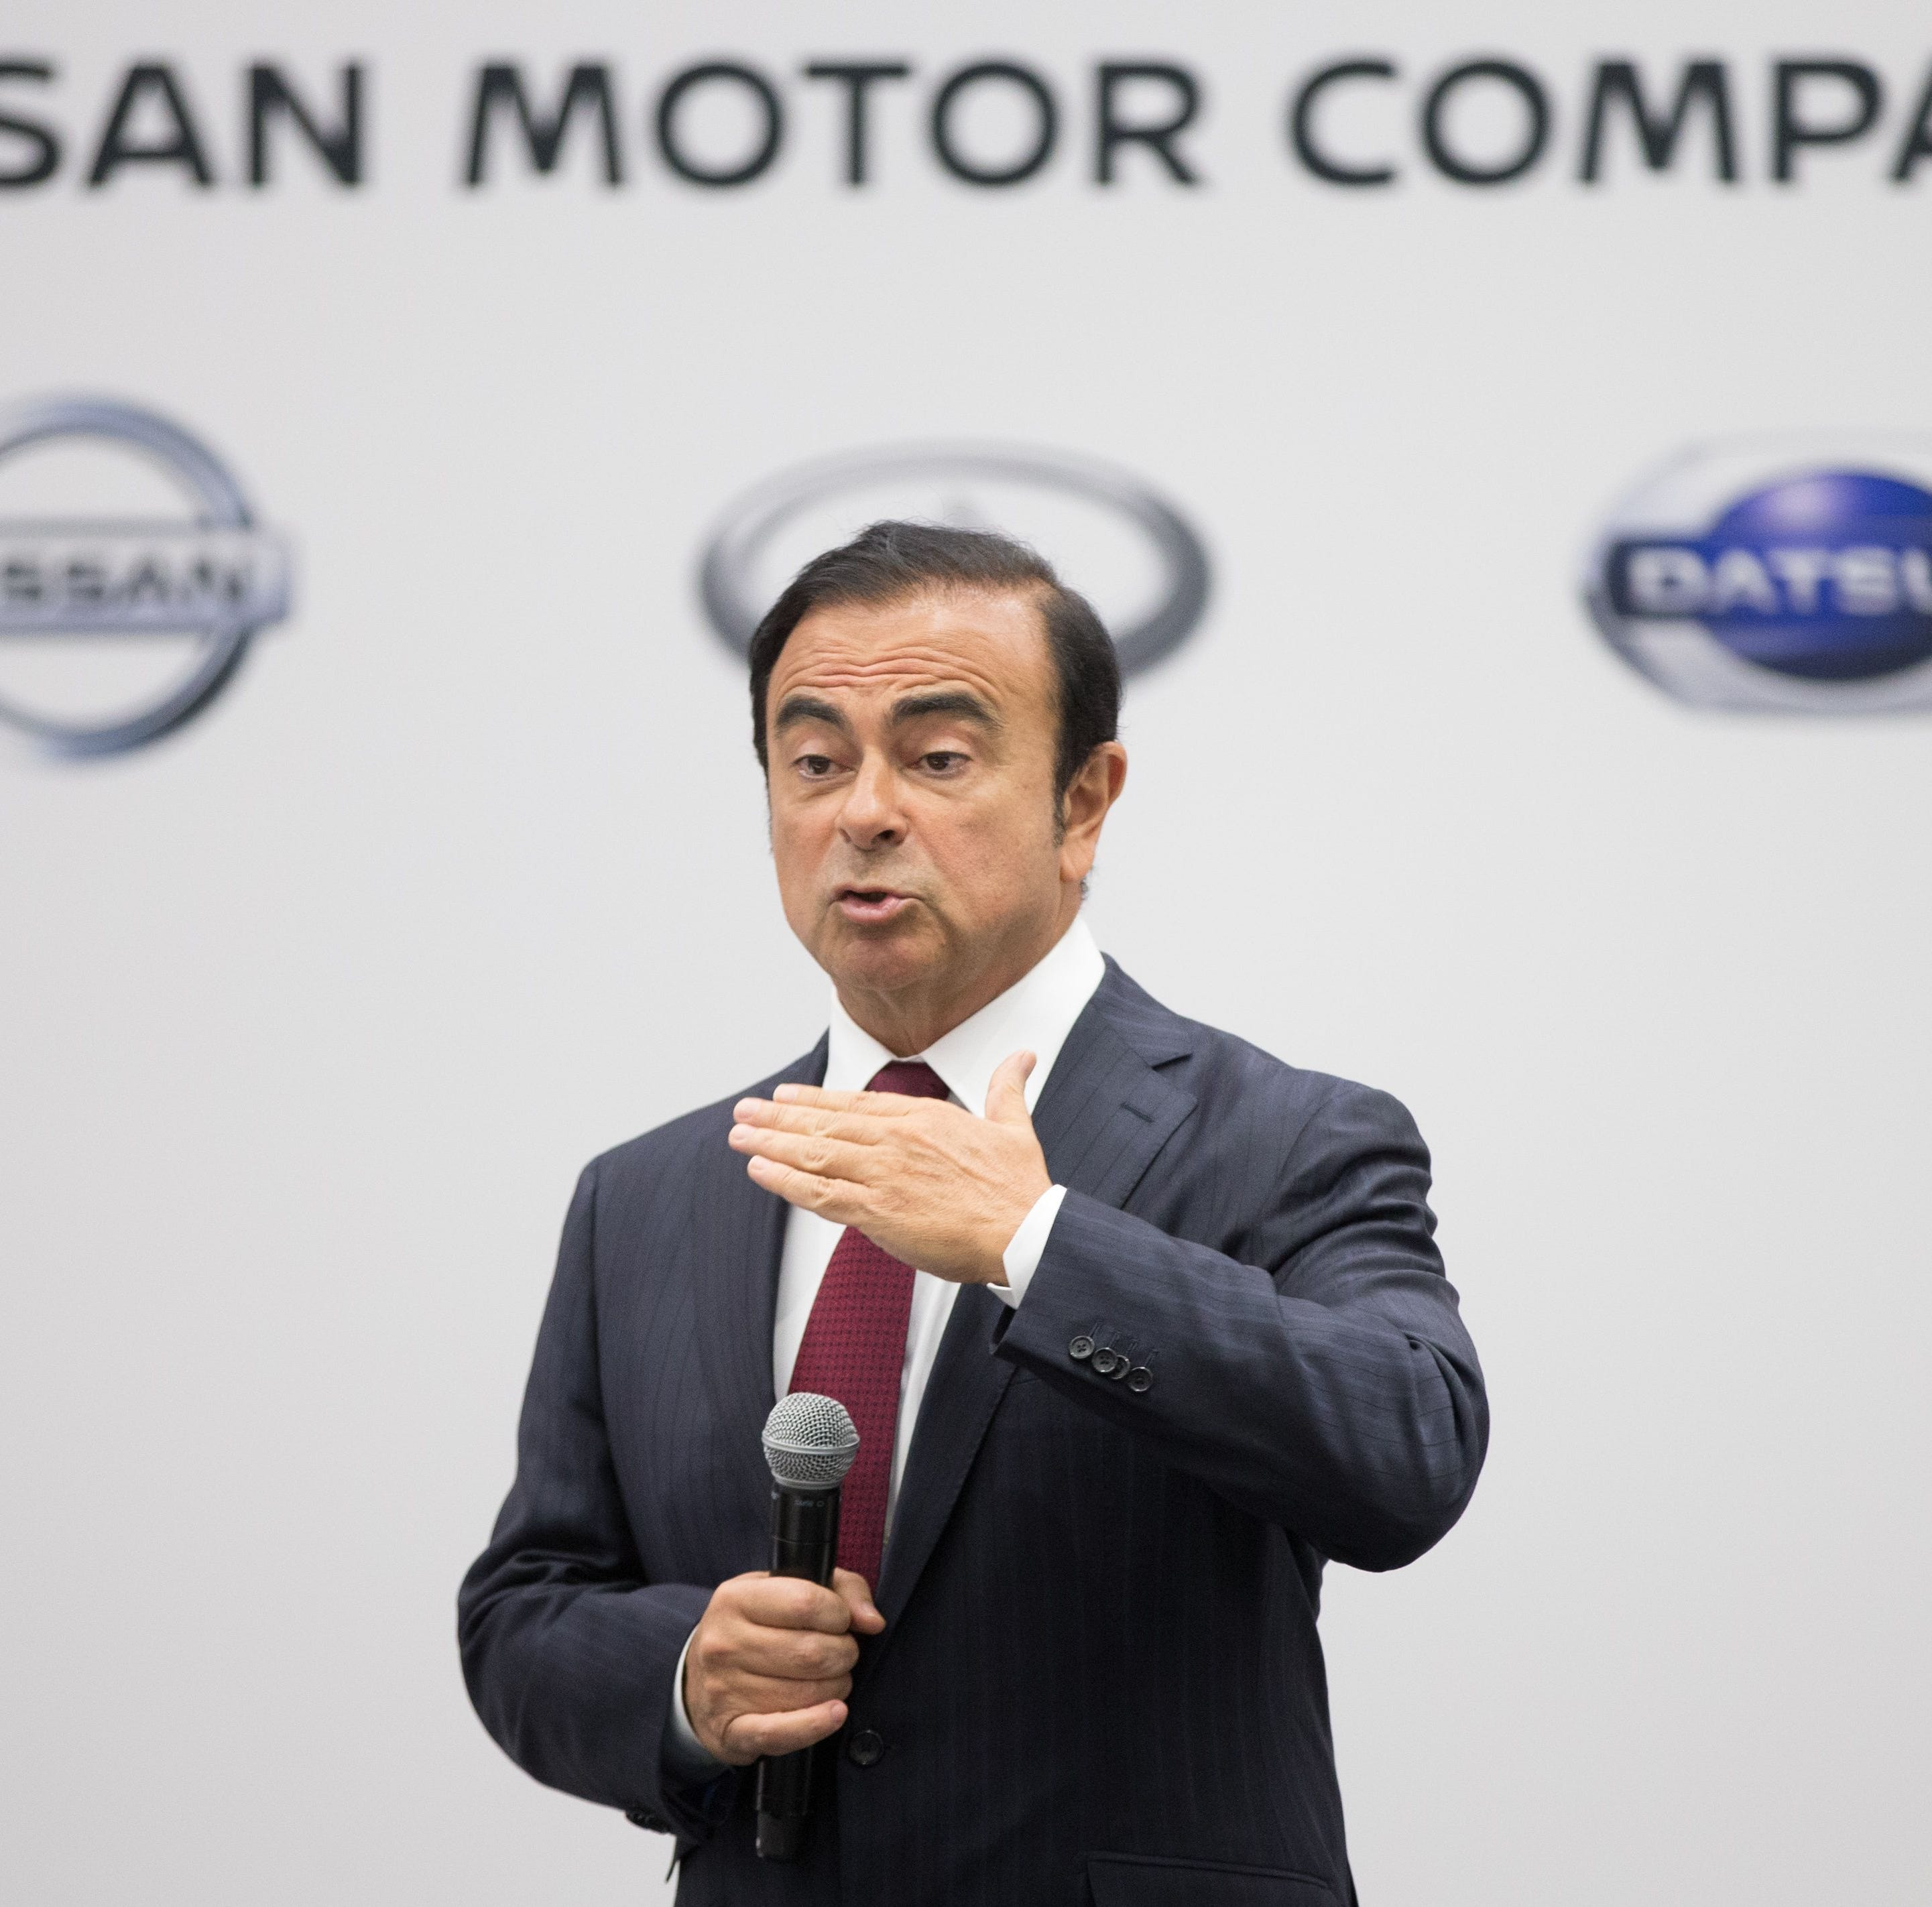 Nissan's former chairman Carlos Ghosn and executive Greg Kelly indicted for underreporting pay